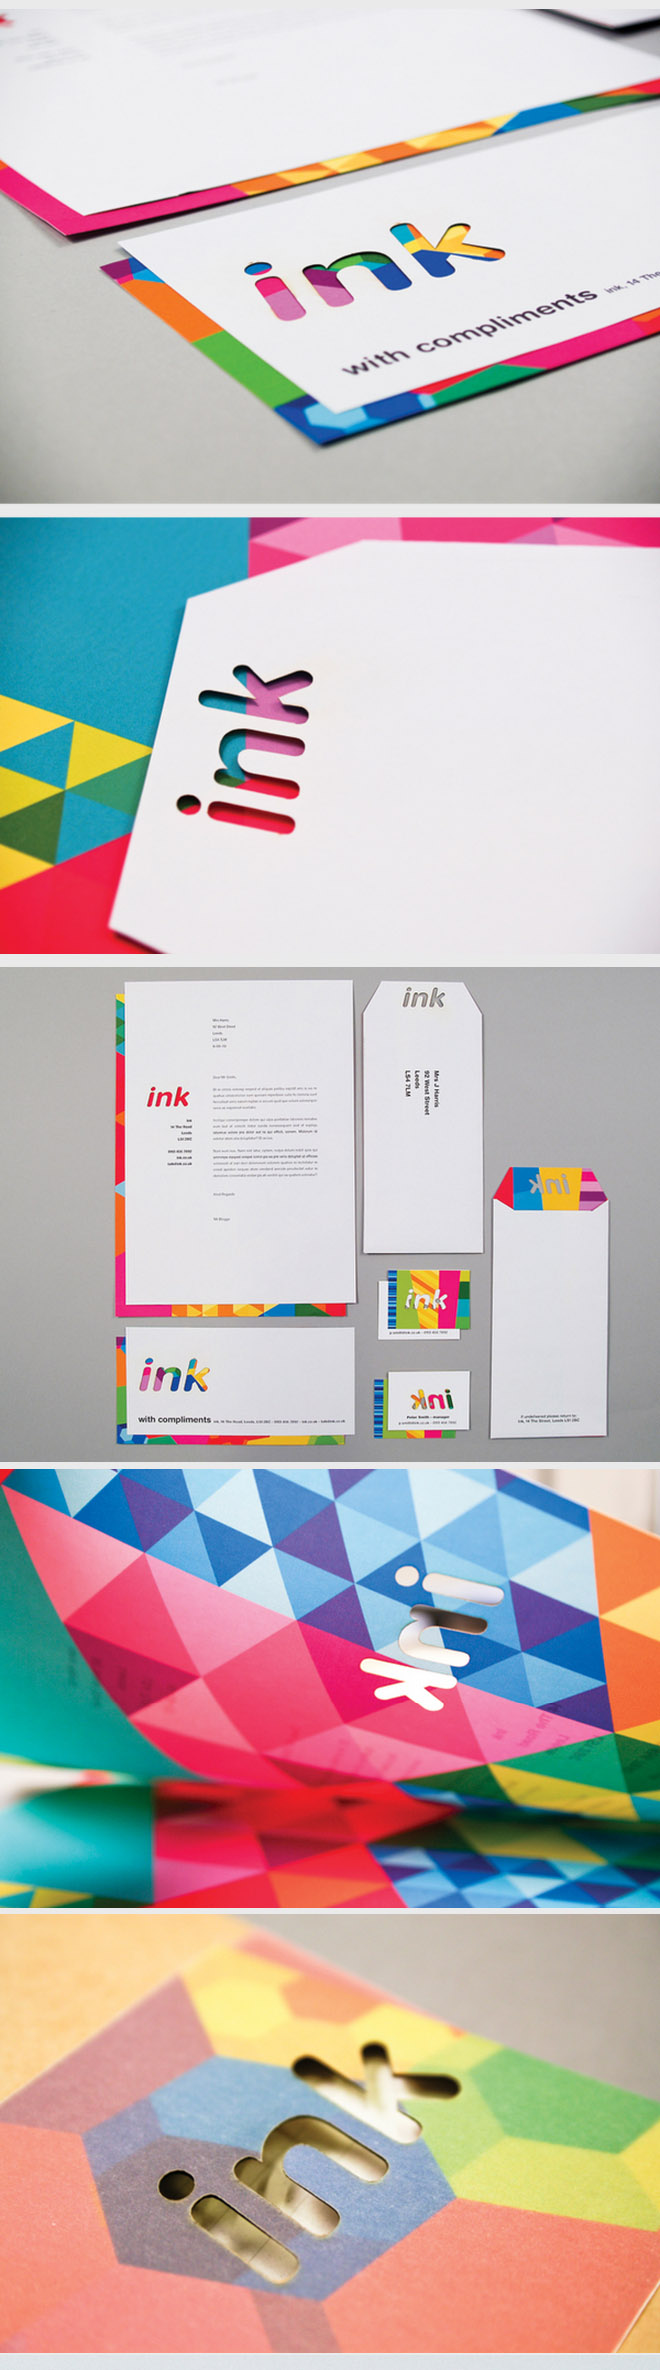 18-ink-best-branding-design